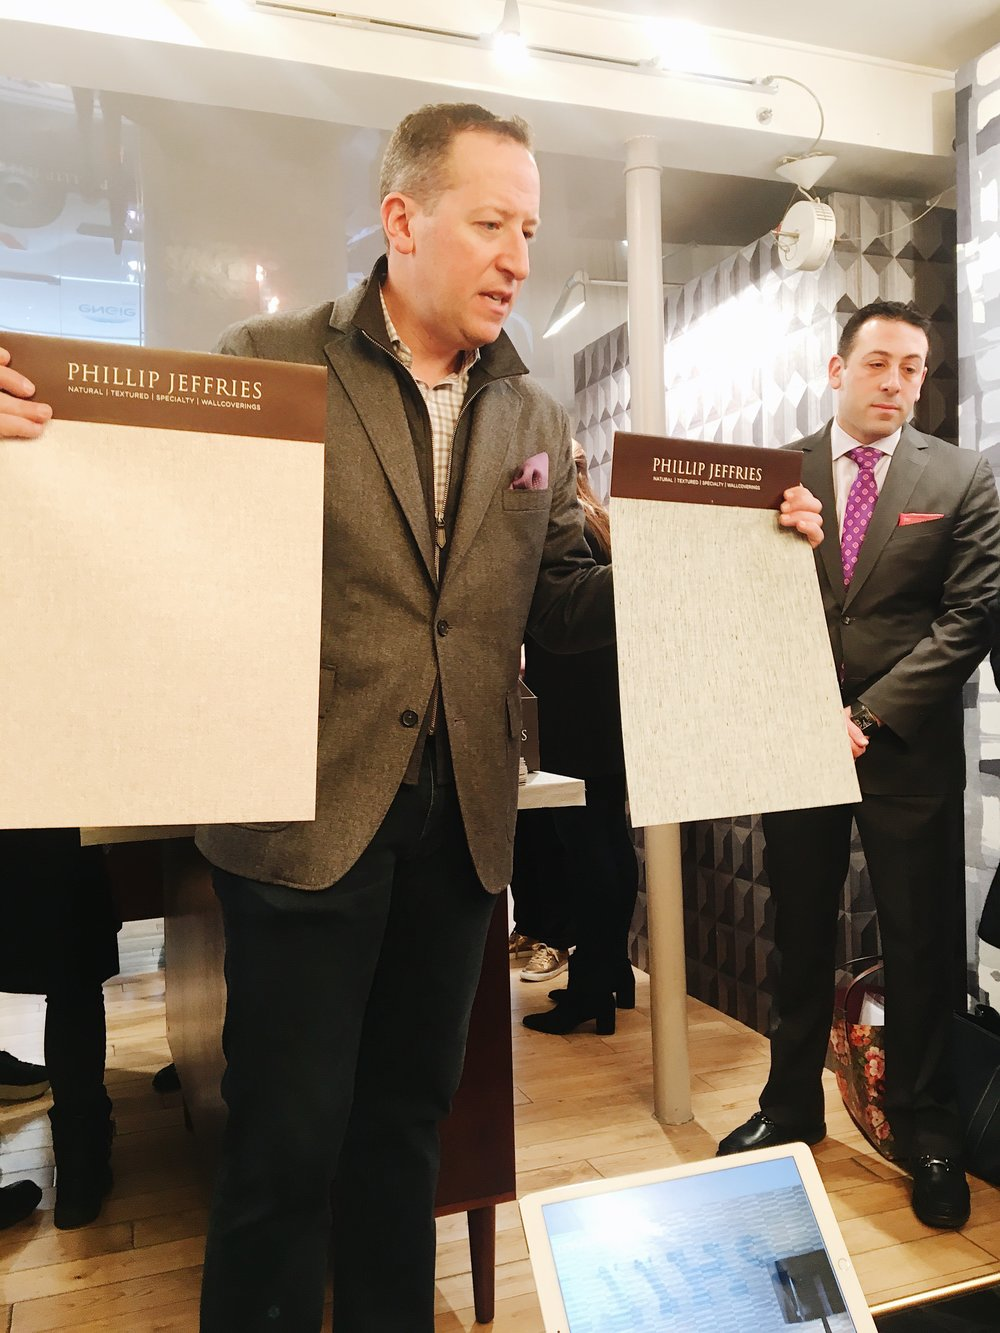 Paris Deco Off: Philip & Jeffrey (from PhillipJeffries) presenting their new line of wall coverings to our Chicago design community - Special thank you to the Holly Hunt design team!